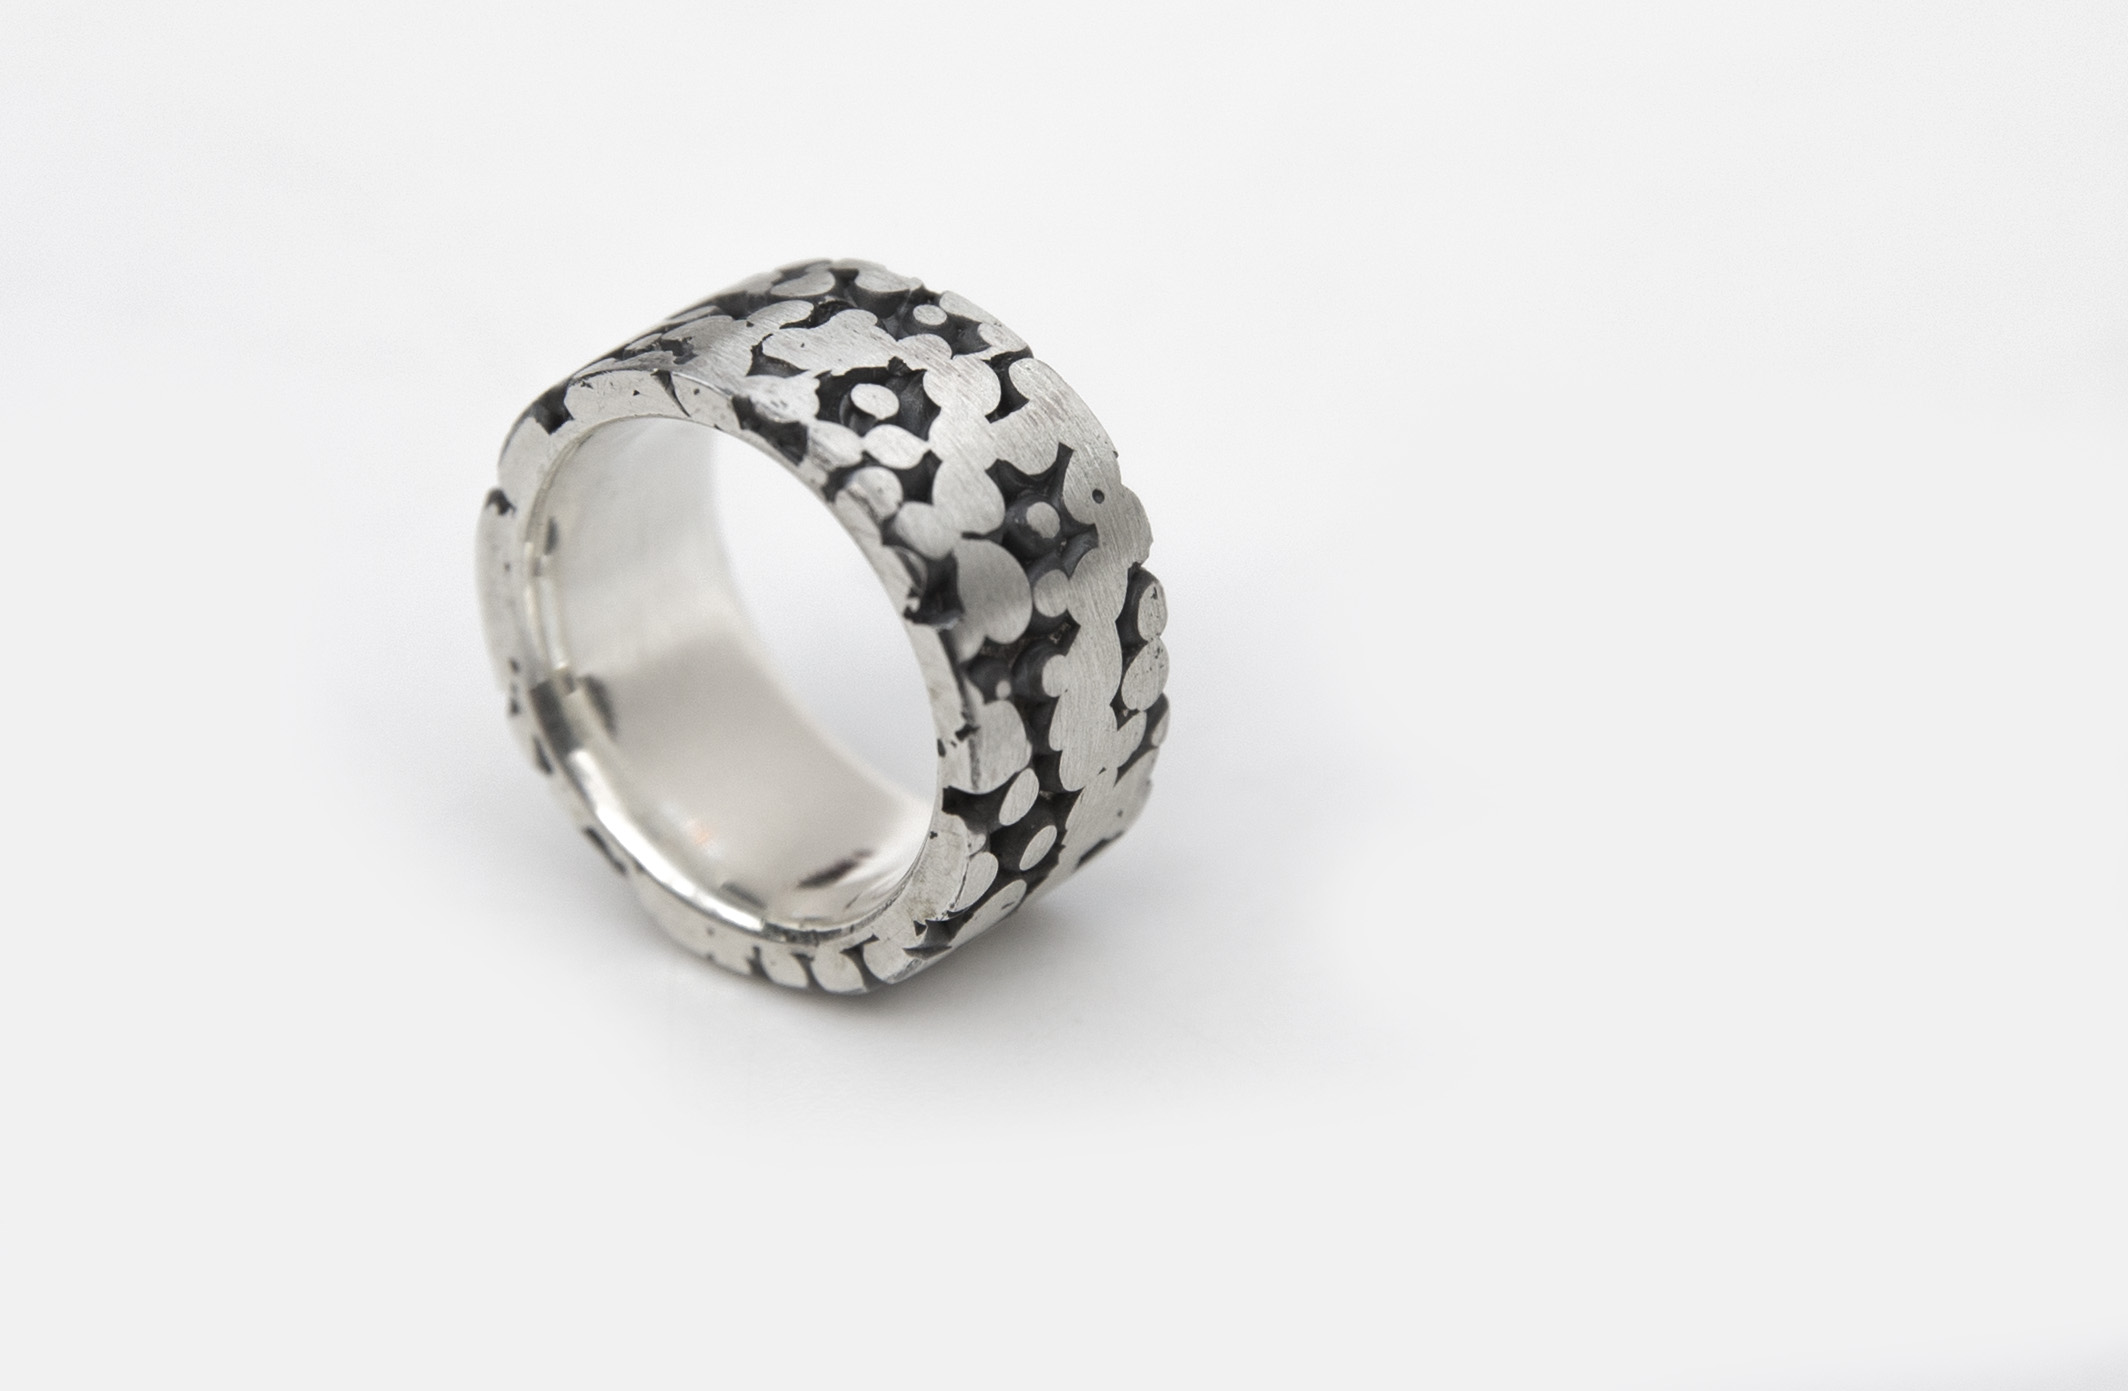 Ring uit de collectie Herfst. Geoxideerd zilver. Elke ring is unica.